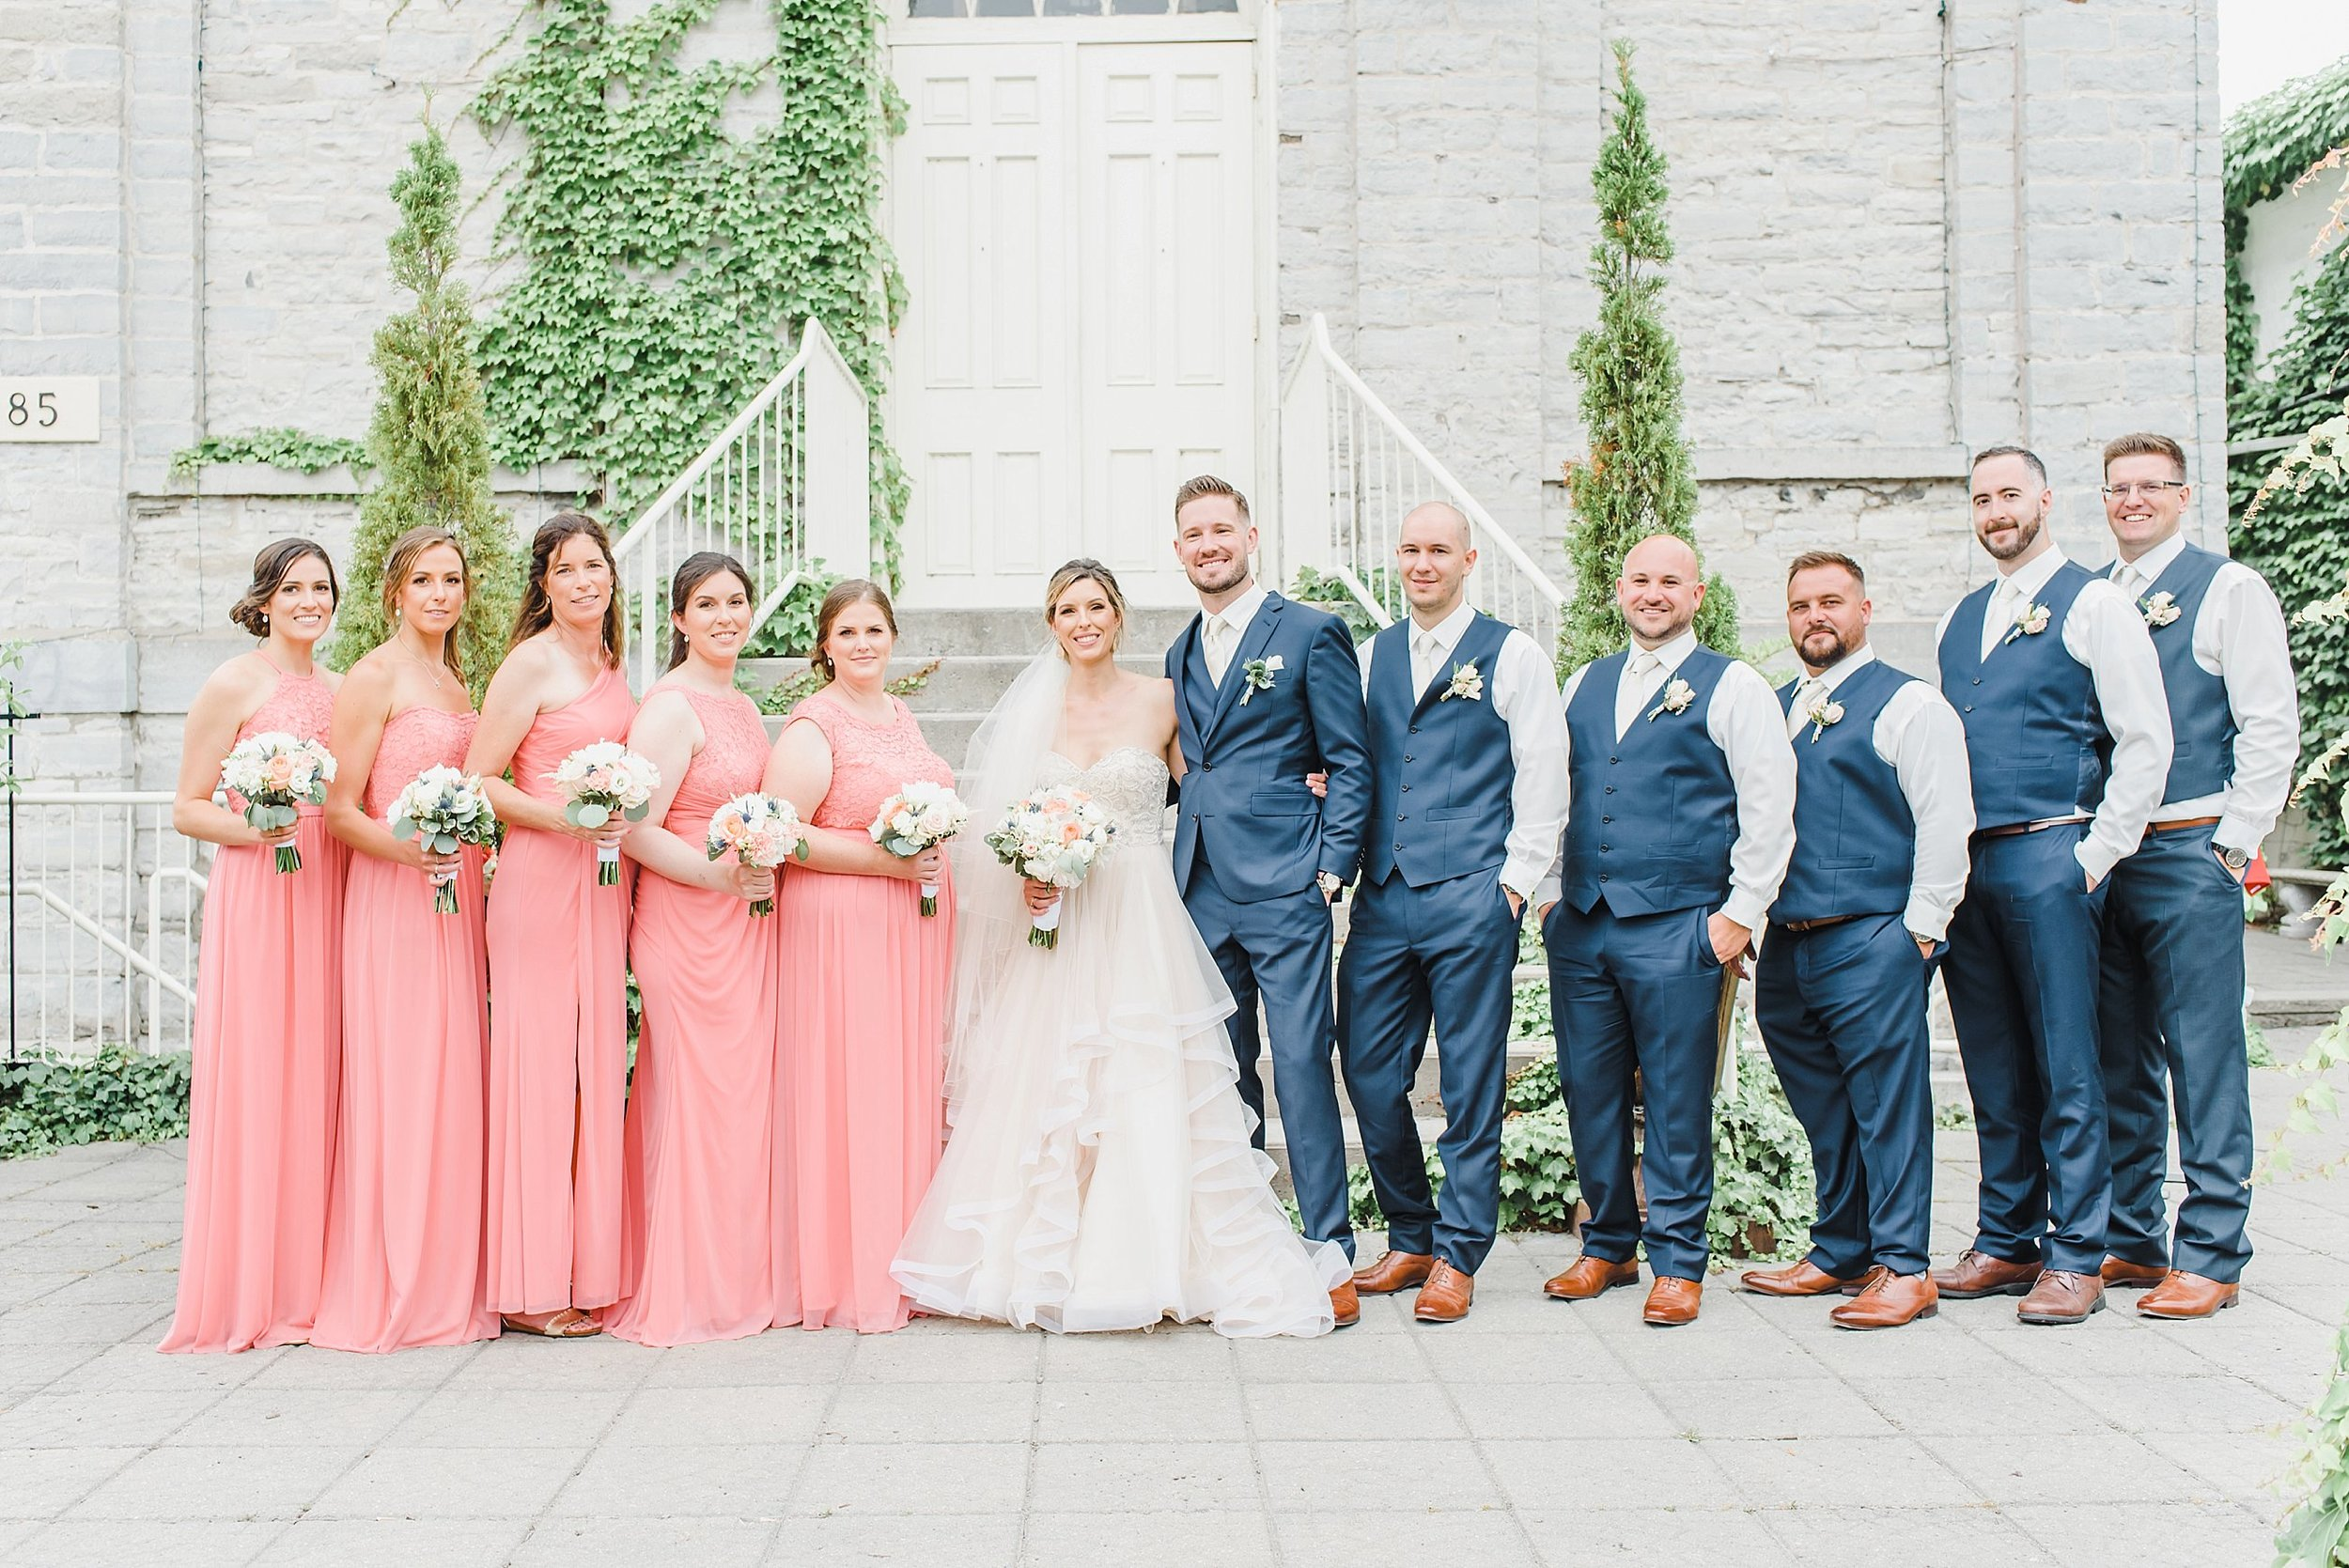 The rain started pouring a few minutes after the ceremony took place, so we took cover and went on over to the reception space, the Renaissance Events Venue, where the rain decided to hold off a little longer for bridal party portraits!